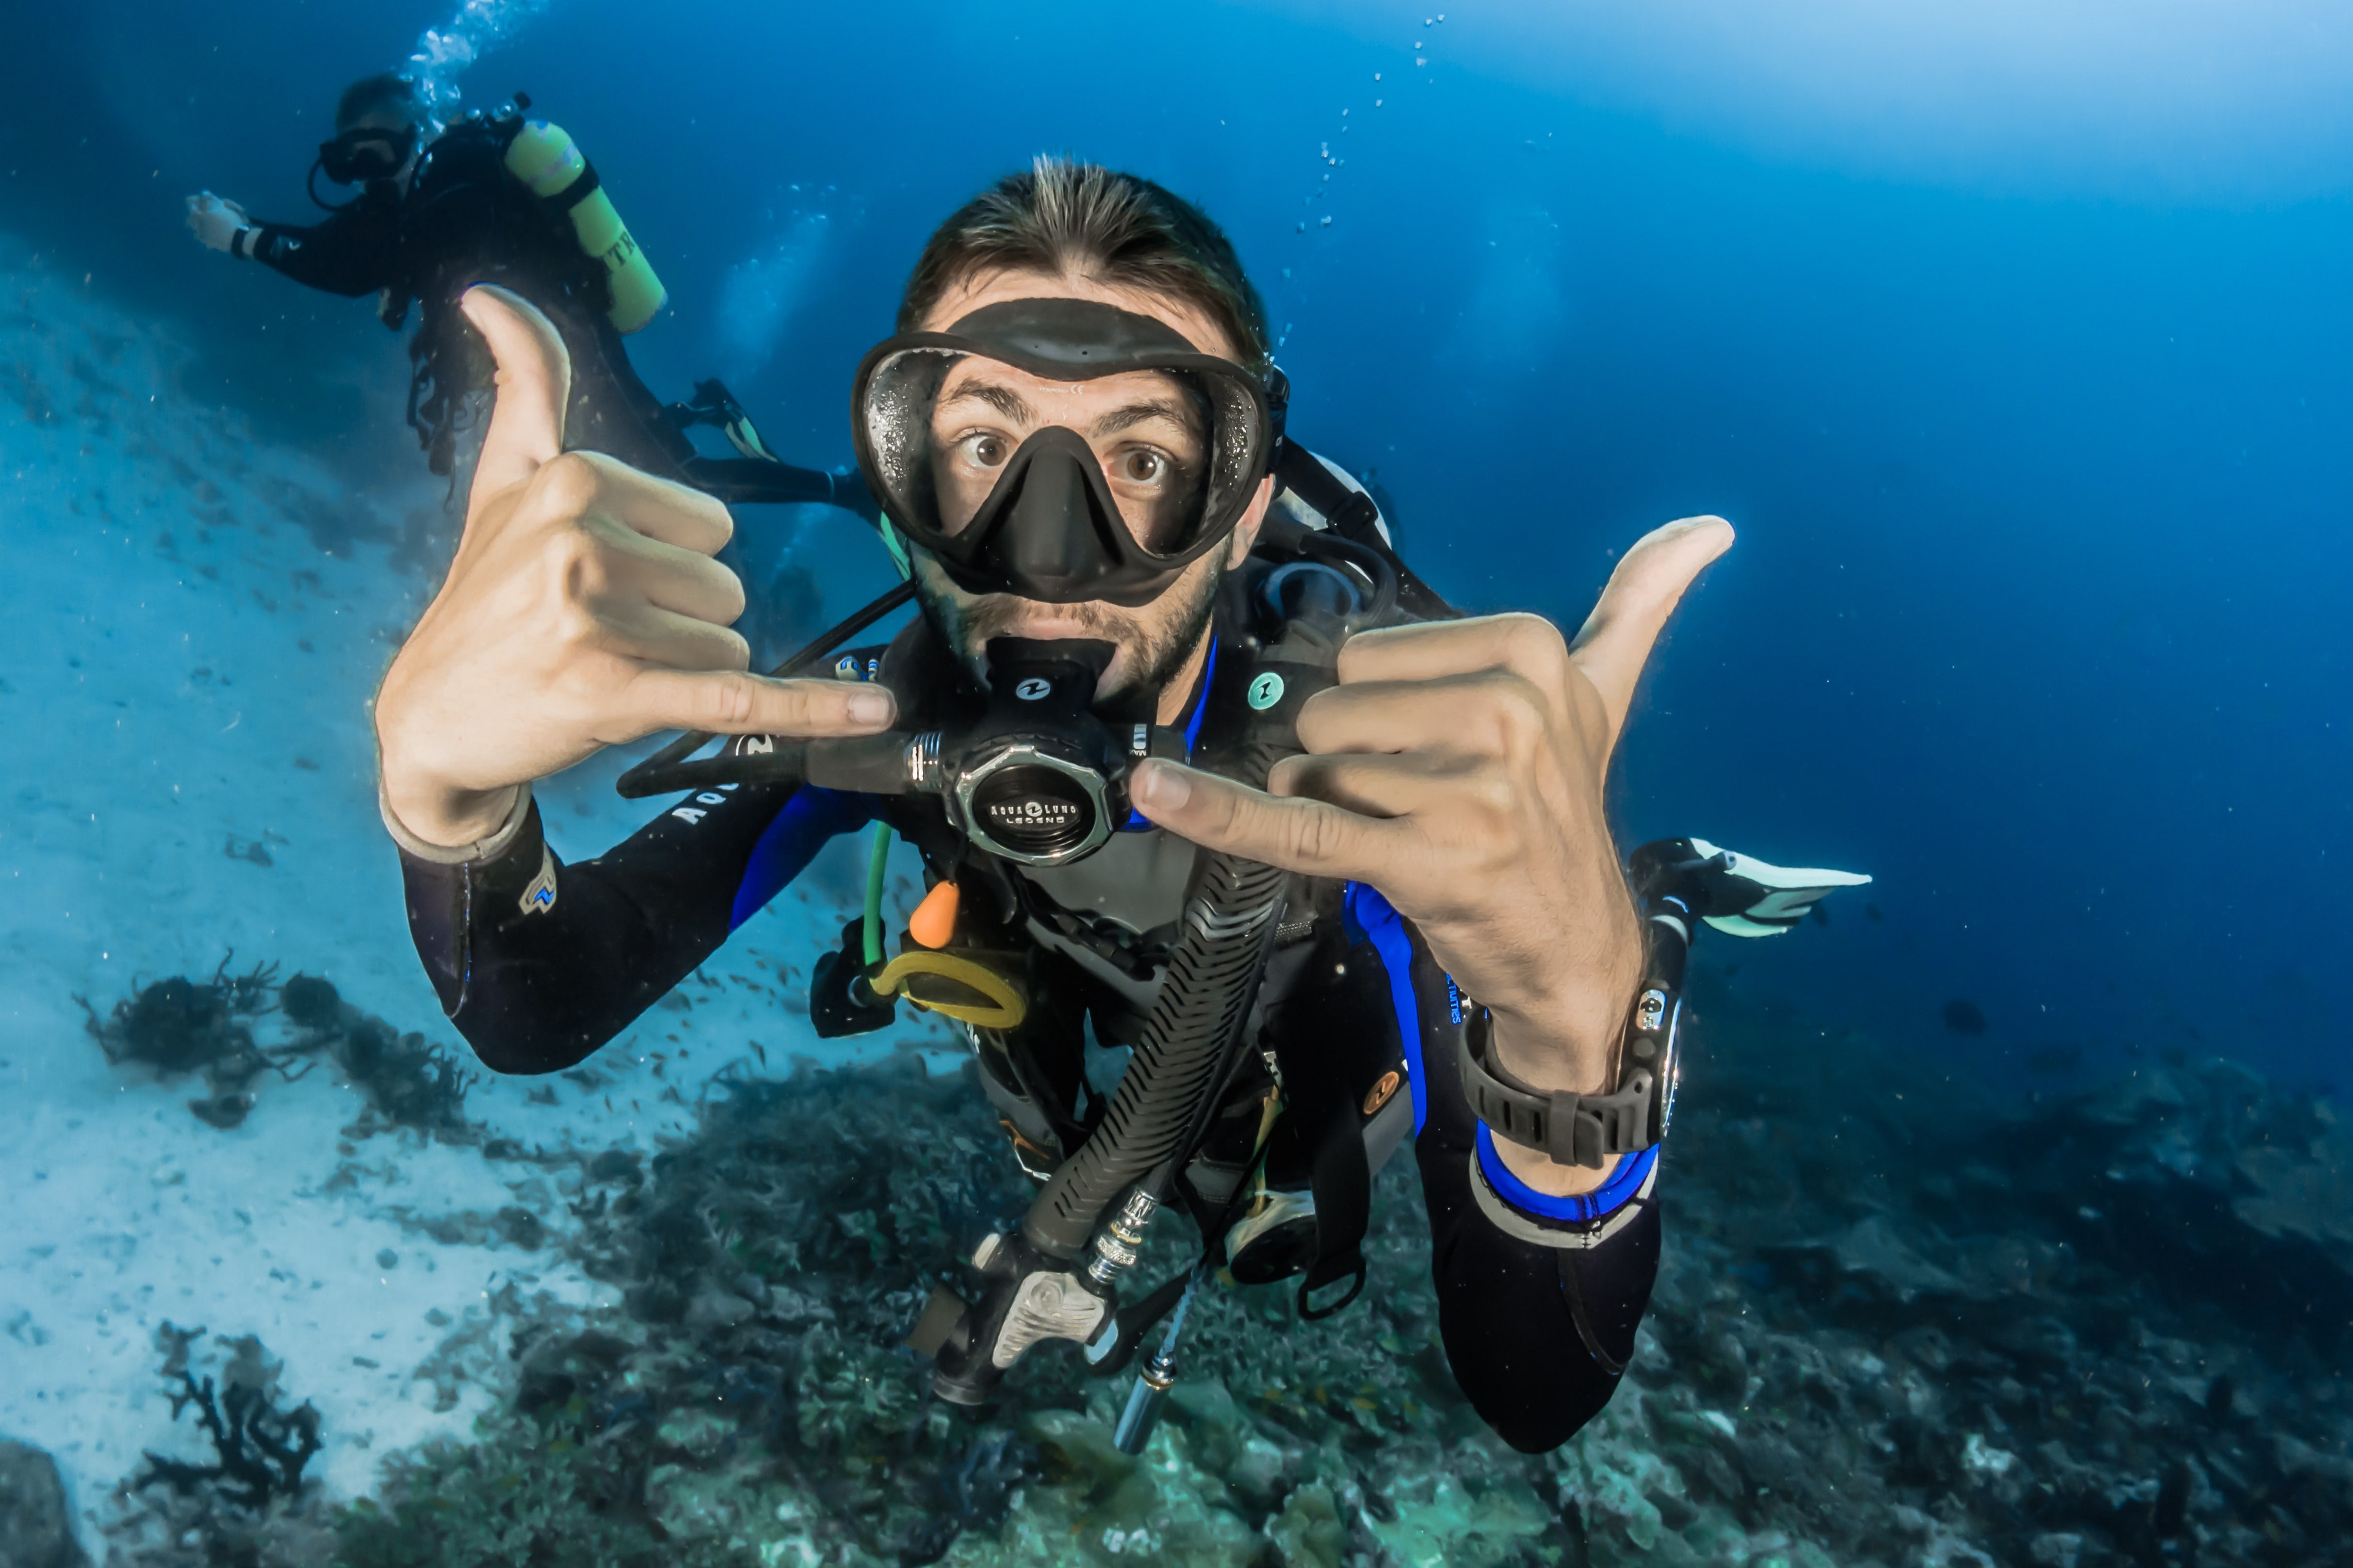 A New Paradigm for the Scuba Diving Industry: It's about diving!